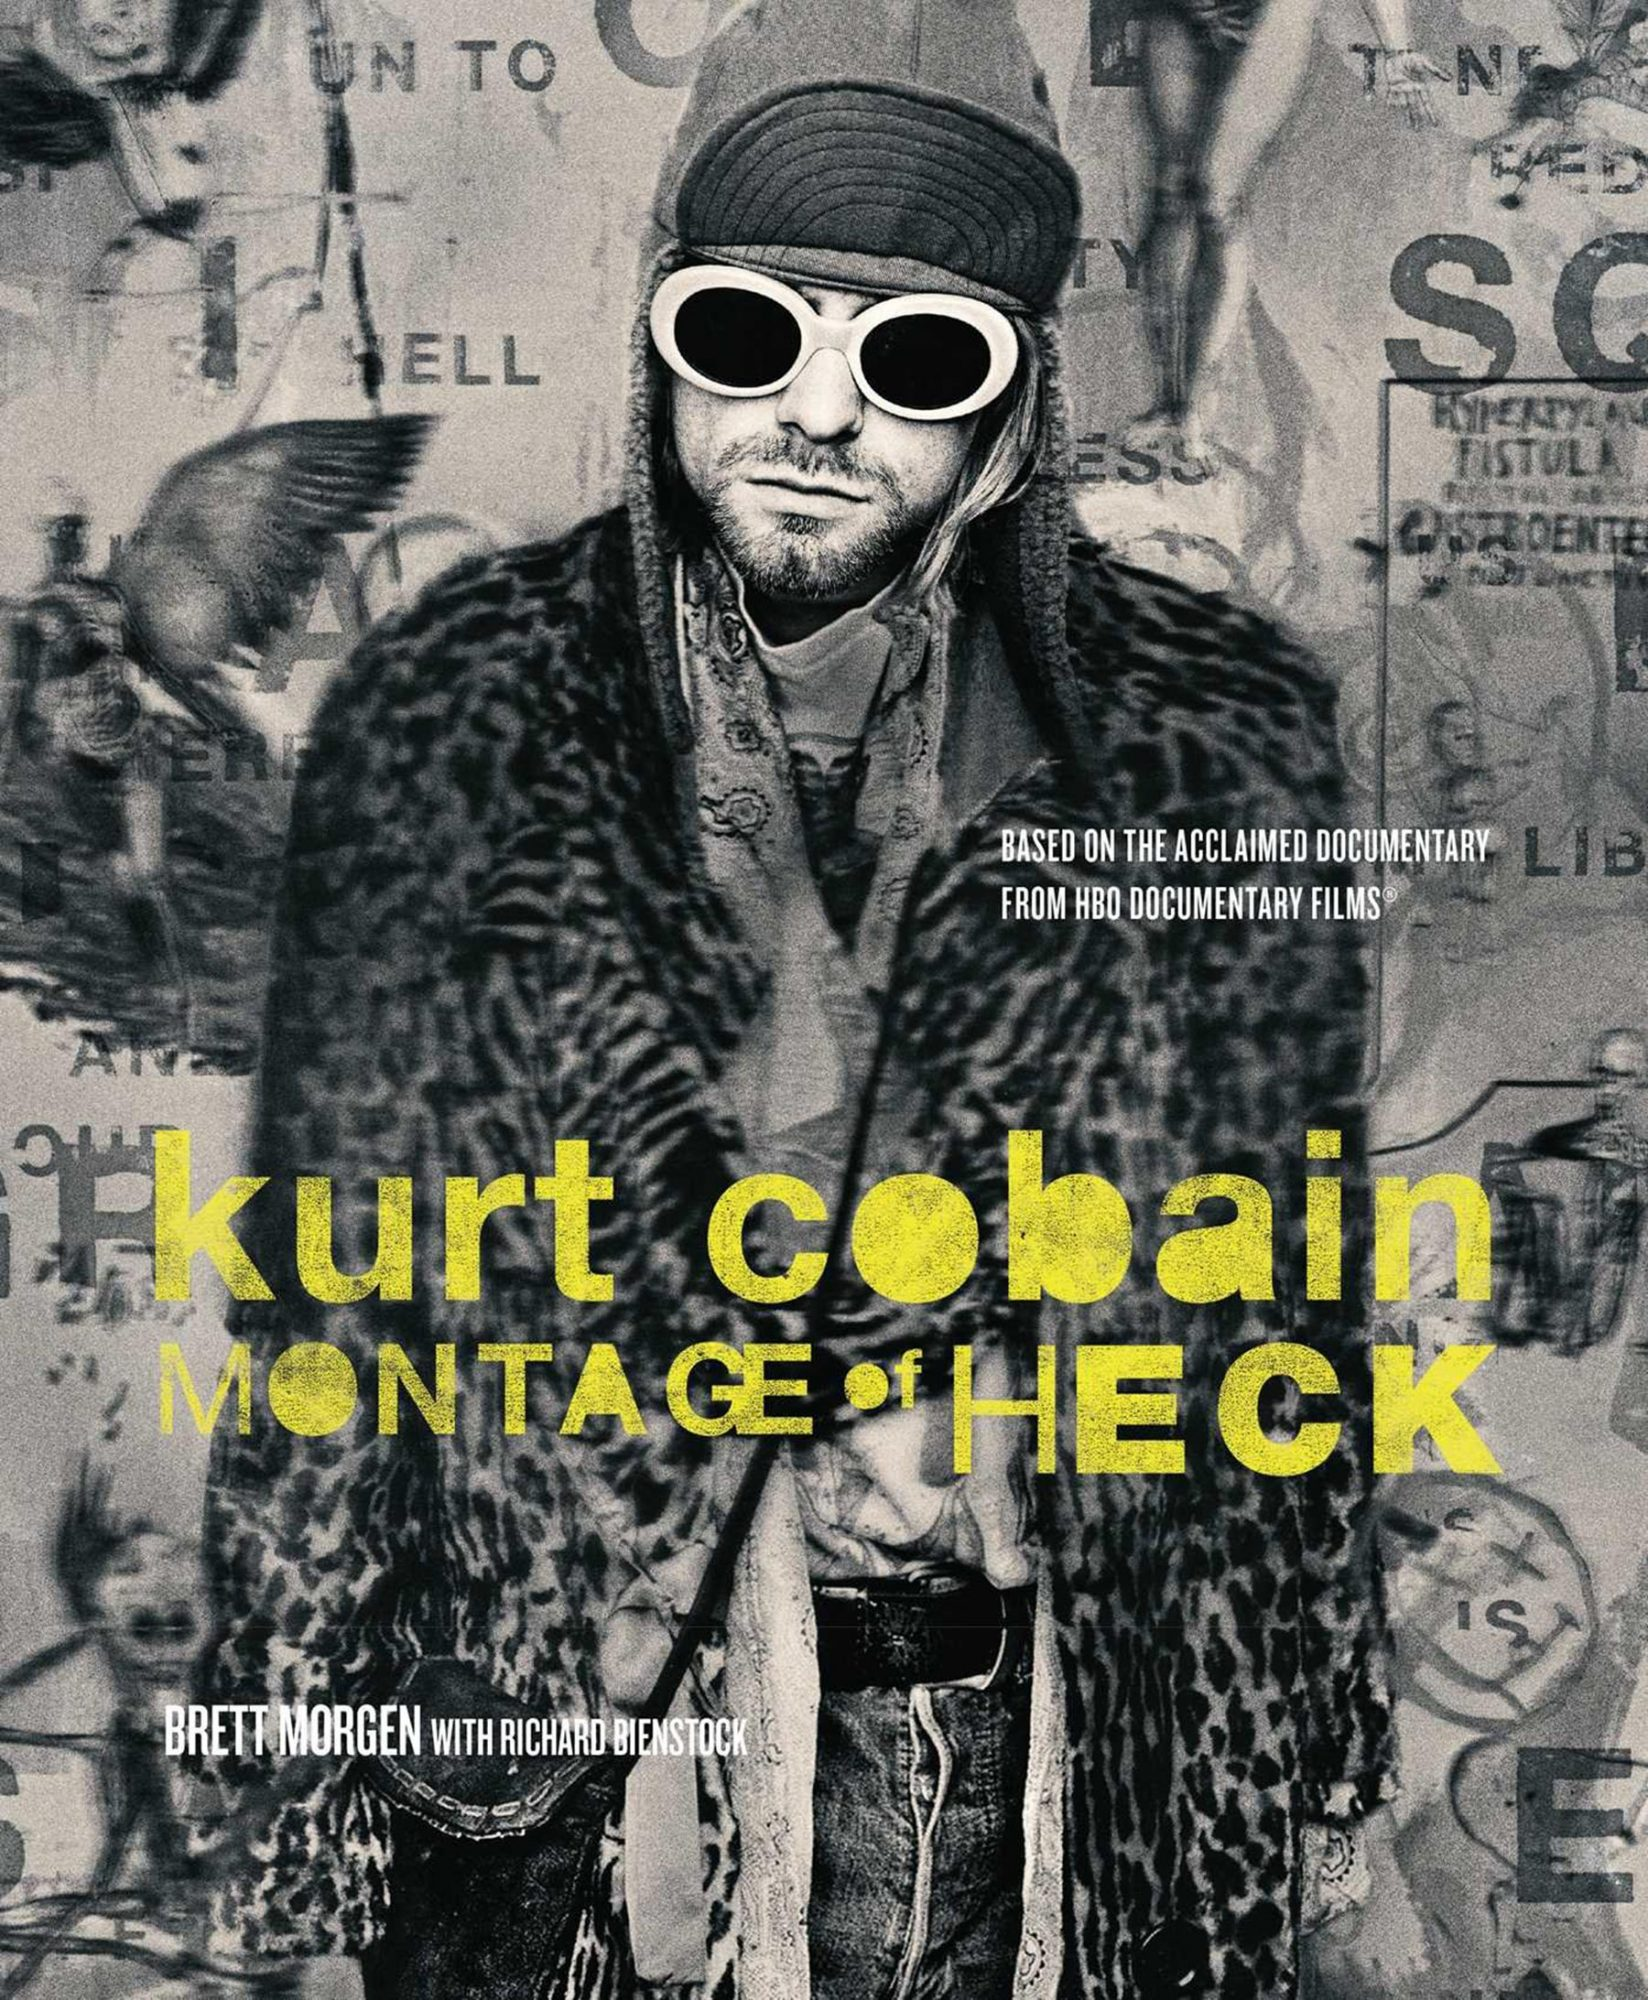 Kurt Cobain: Montage of Heck by Brett Morgen Publisher: Insight Editions